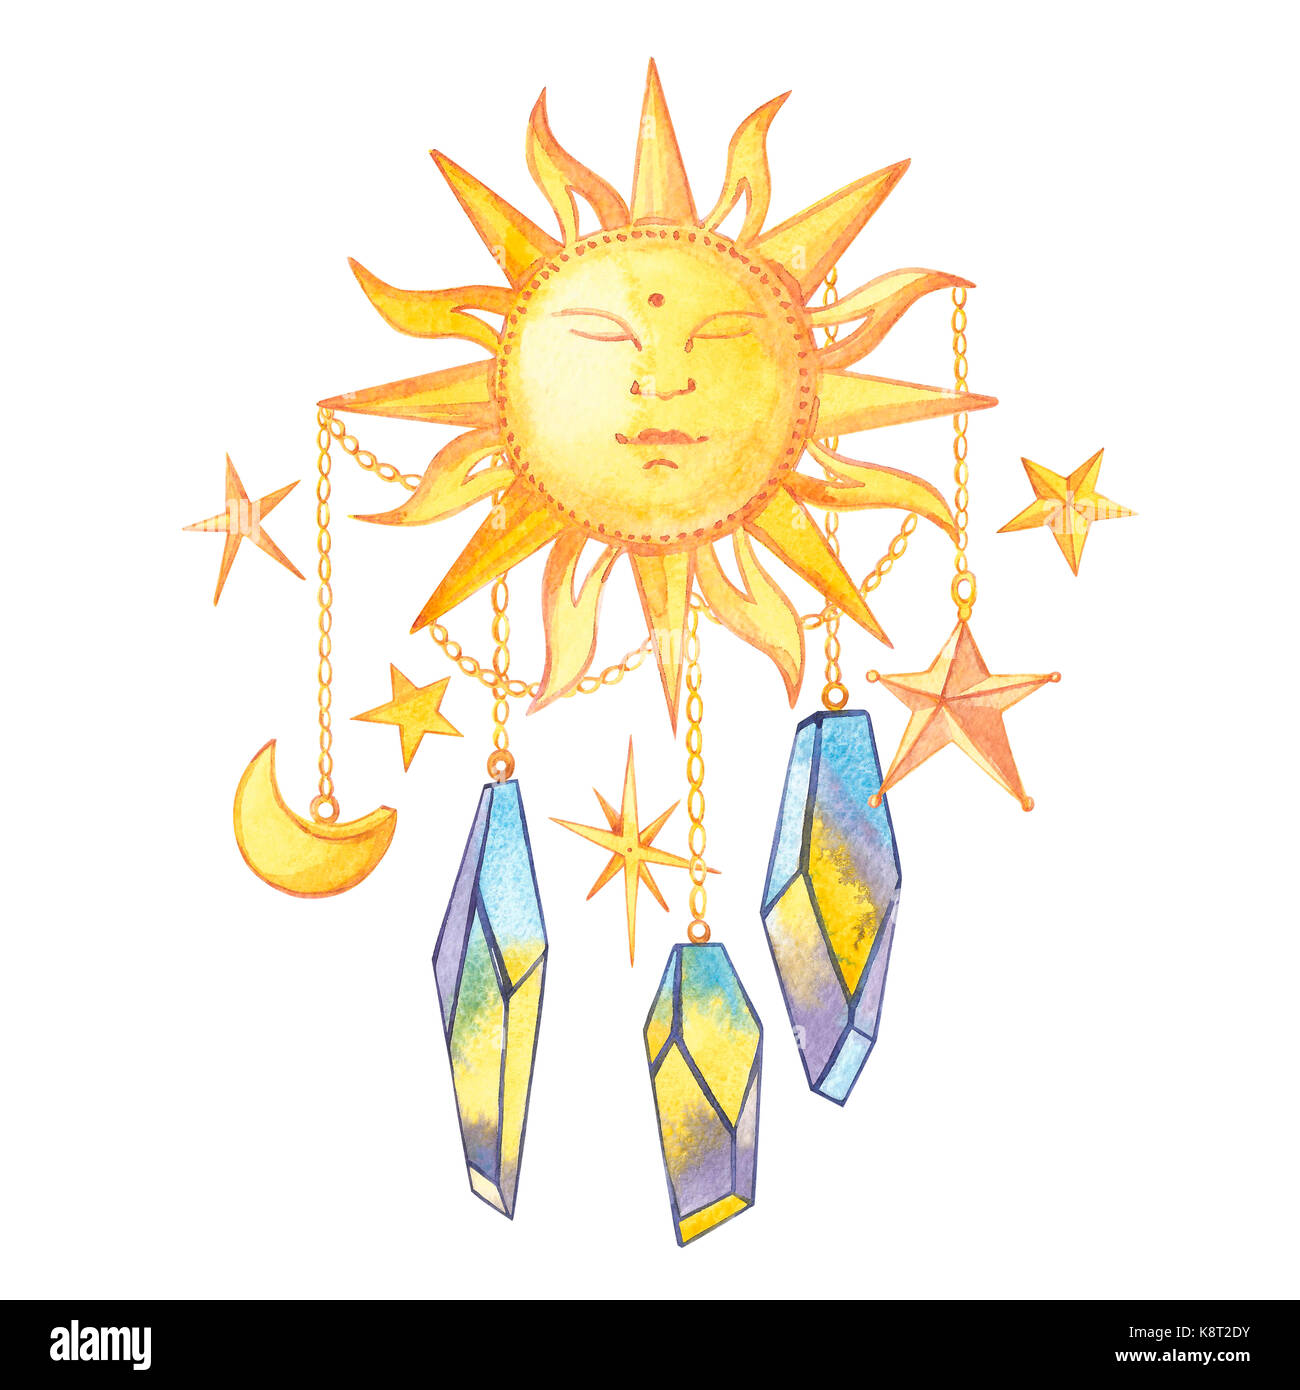 Set of geometric crystals on the chain with the stars and the crescent and sun. Trendy hipster logotypes. Polygonal Stock Photo